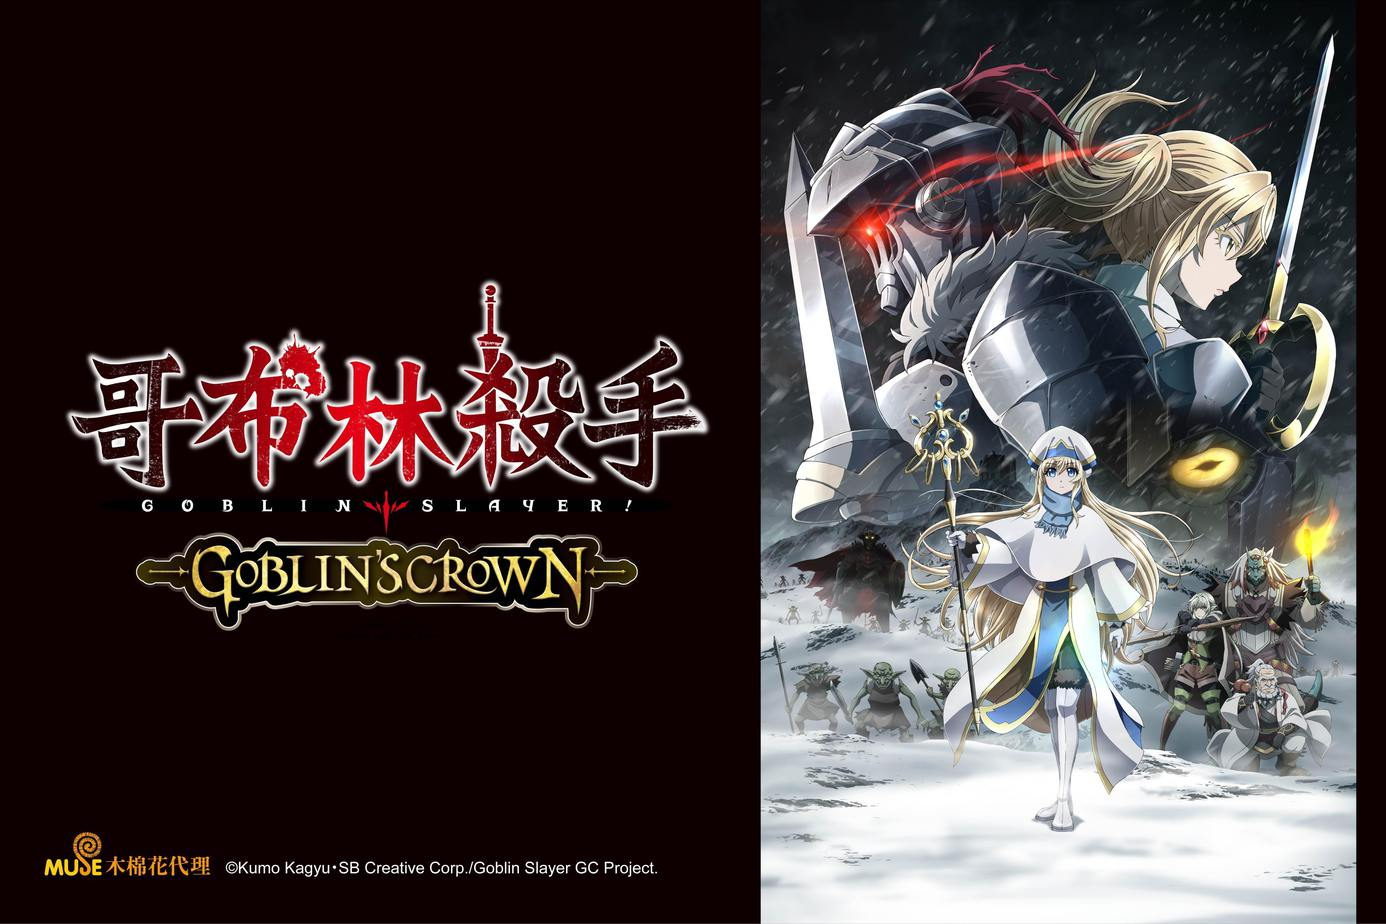 哥布林殺手 劇場版 GOBLIN'S CROWN